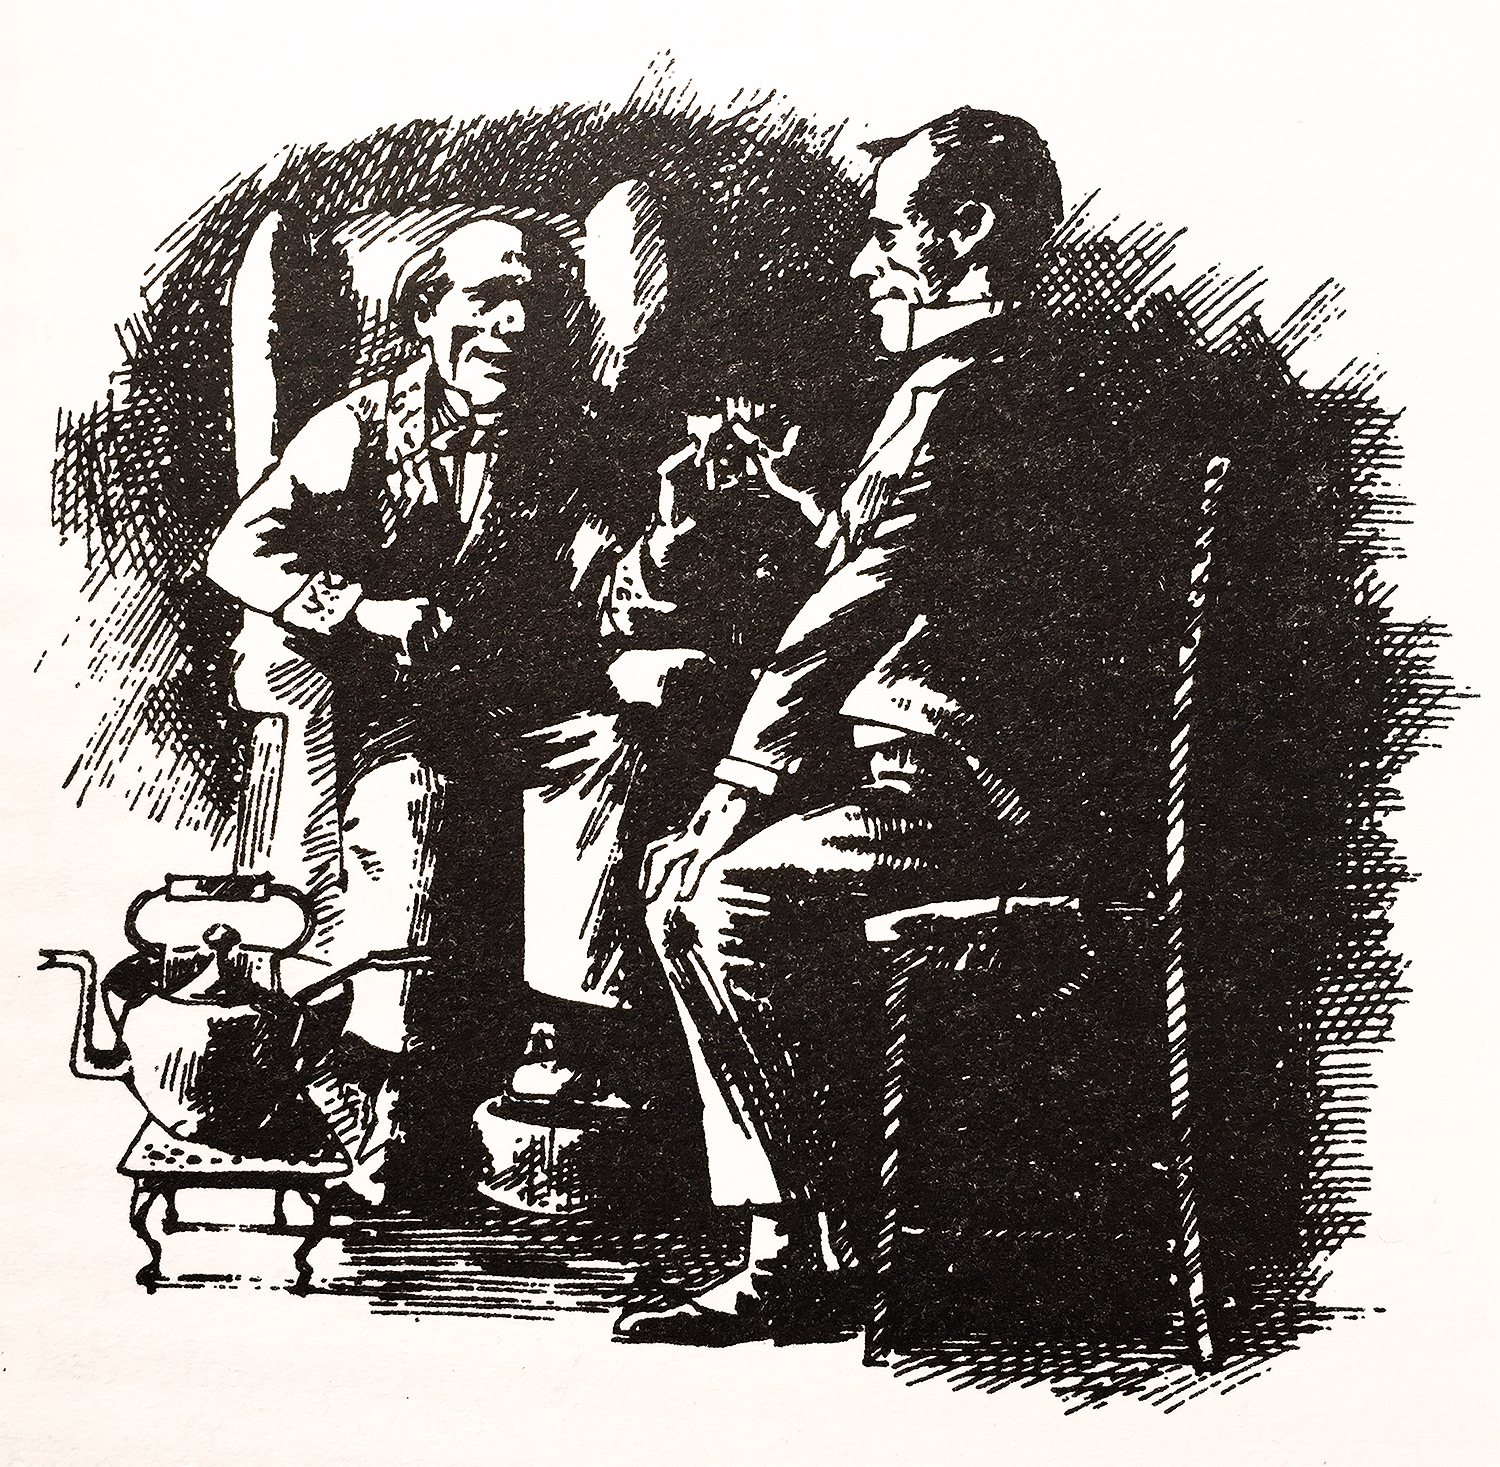 Scrooge and Cratchit share Smoking Bishop in A Christmas Carol by Charles Dickens